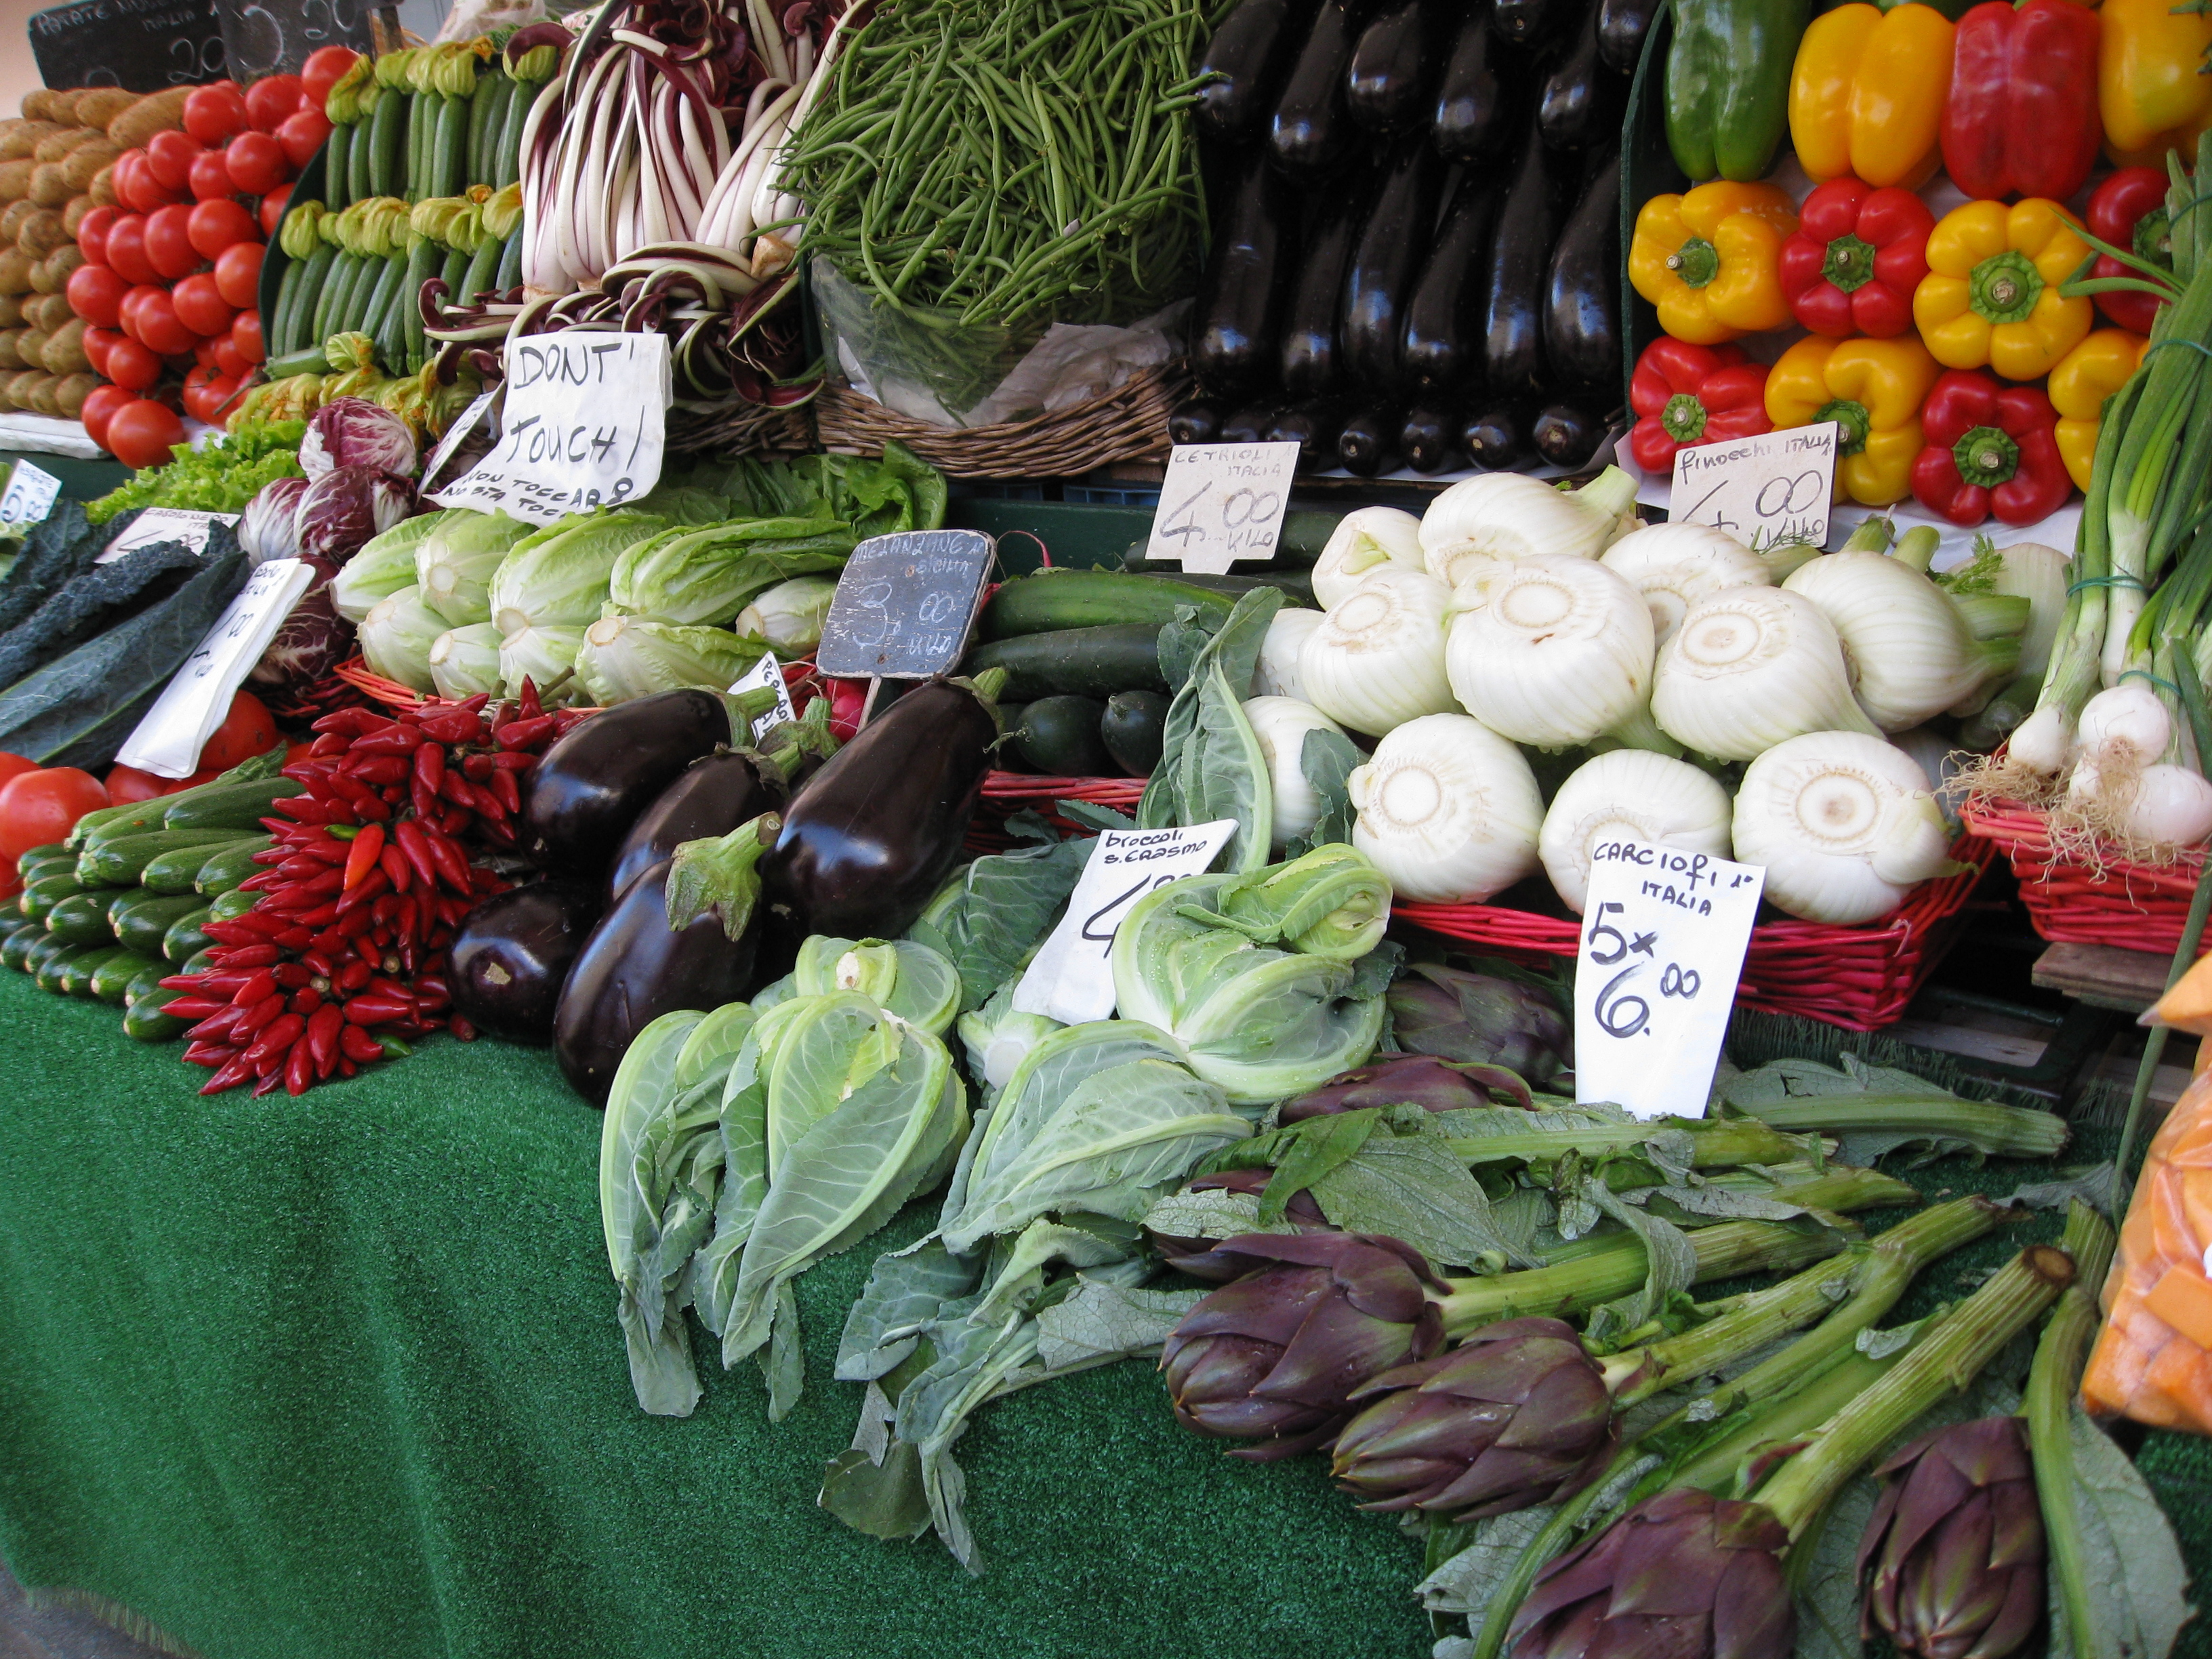 Fennel, chicory (otherwise known as radicchio in Italy), artichokes and more.